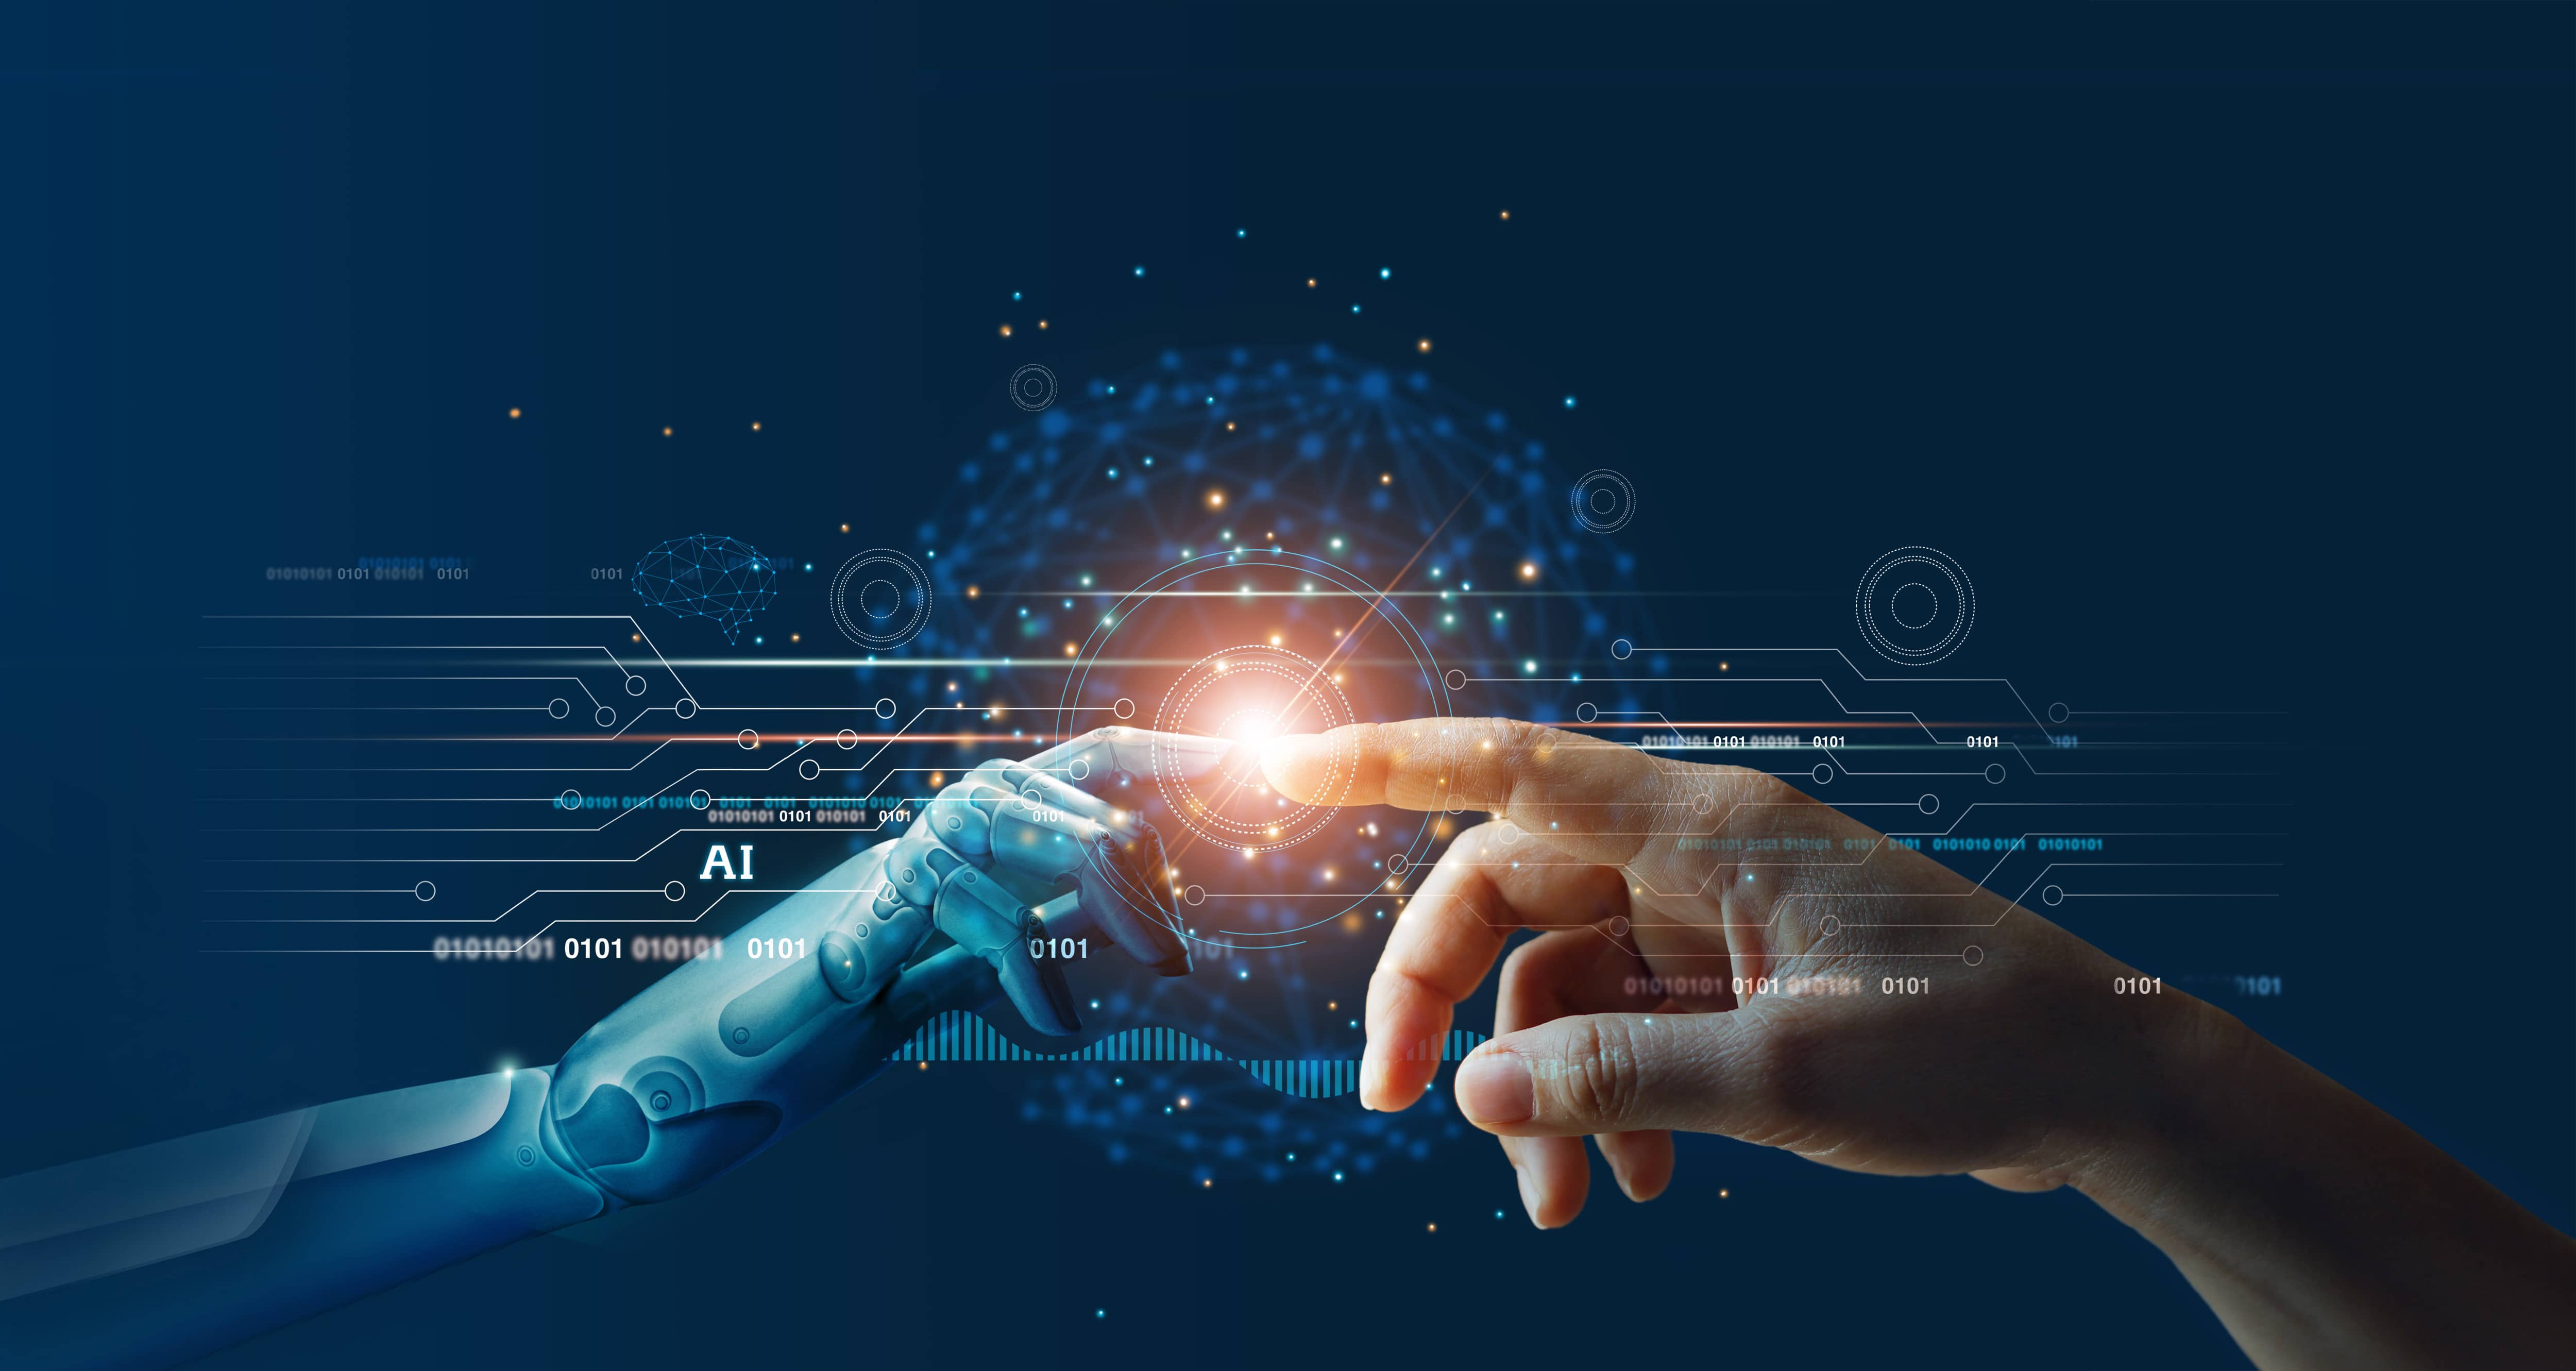 Artificial Intelligence Technology Solutions (AITX) Stock Soared 80% last Week: But Why?